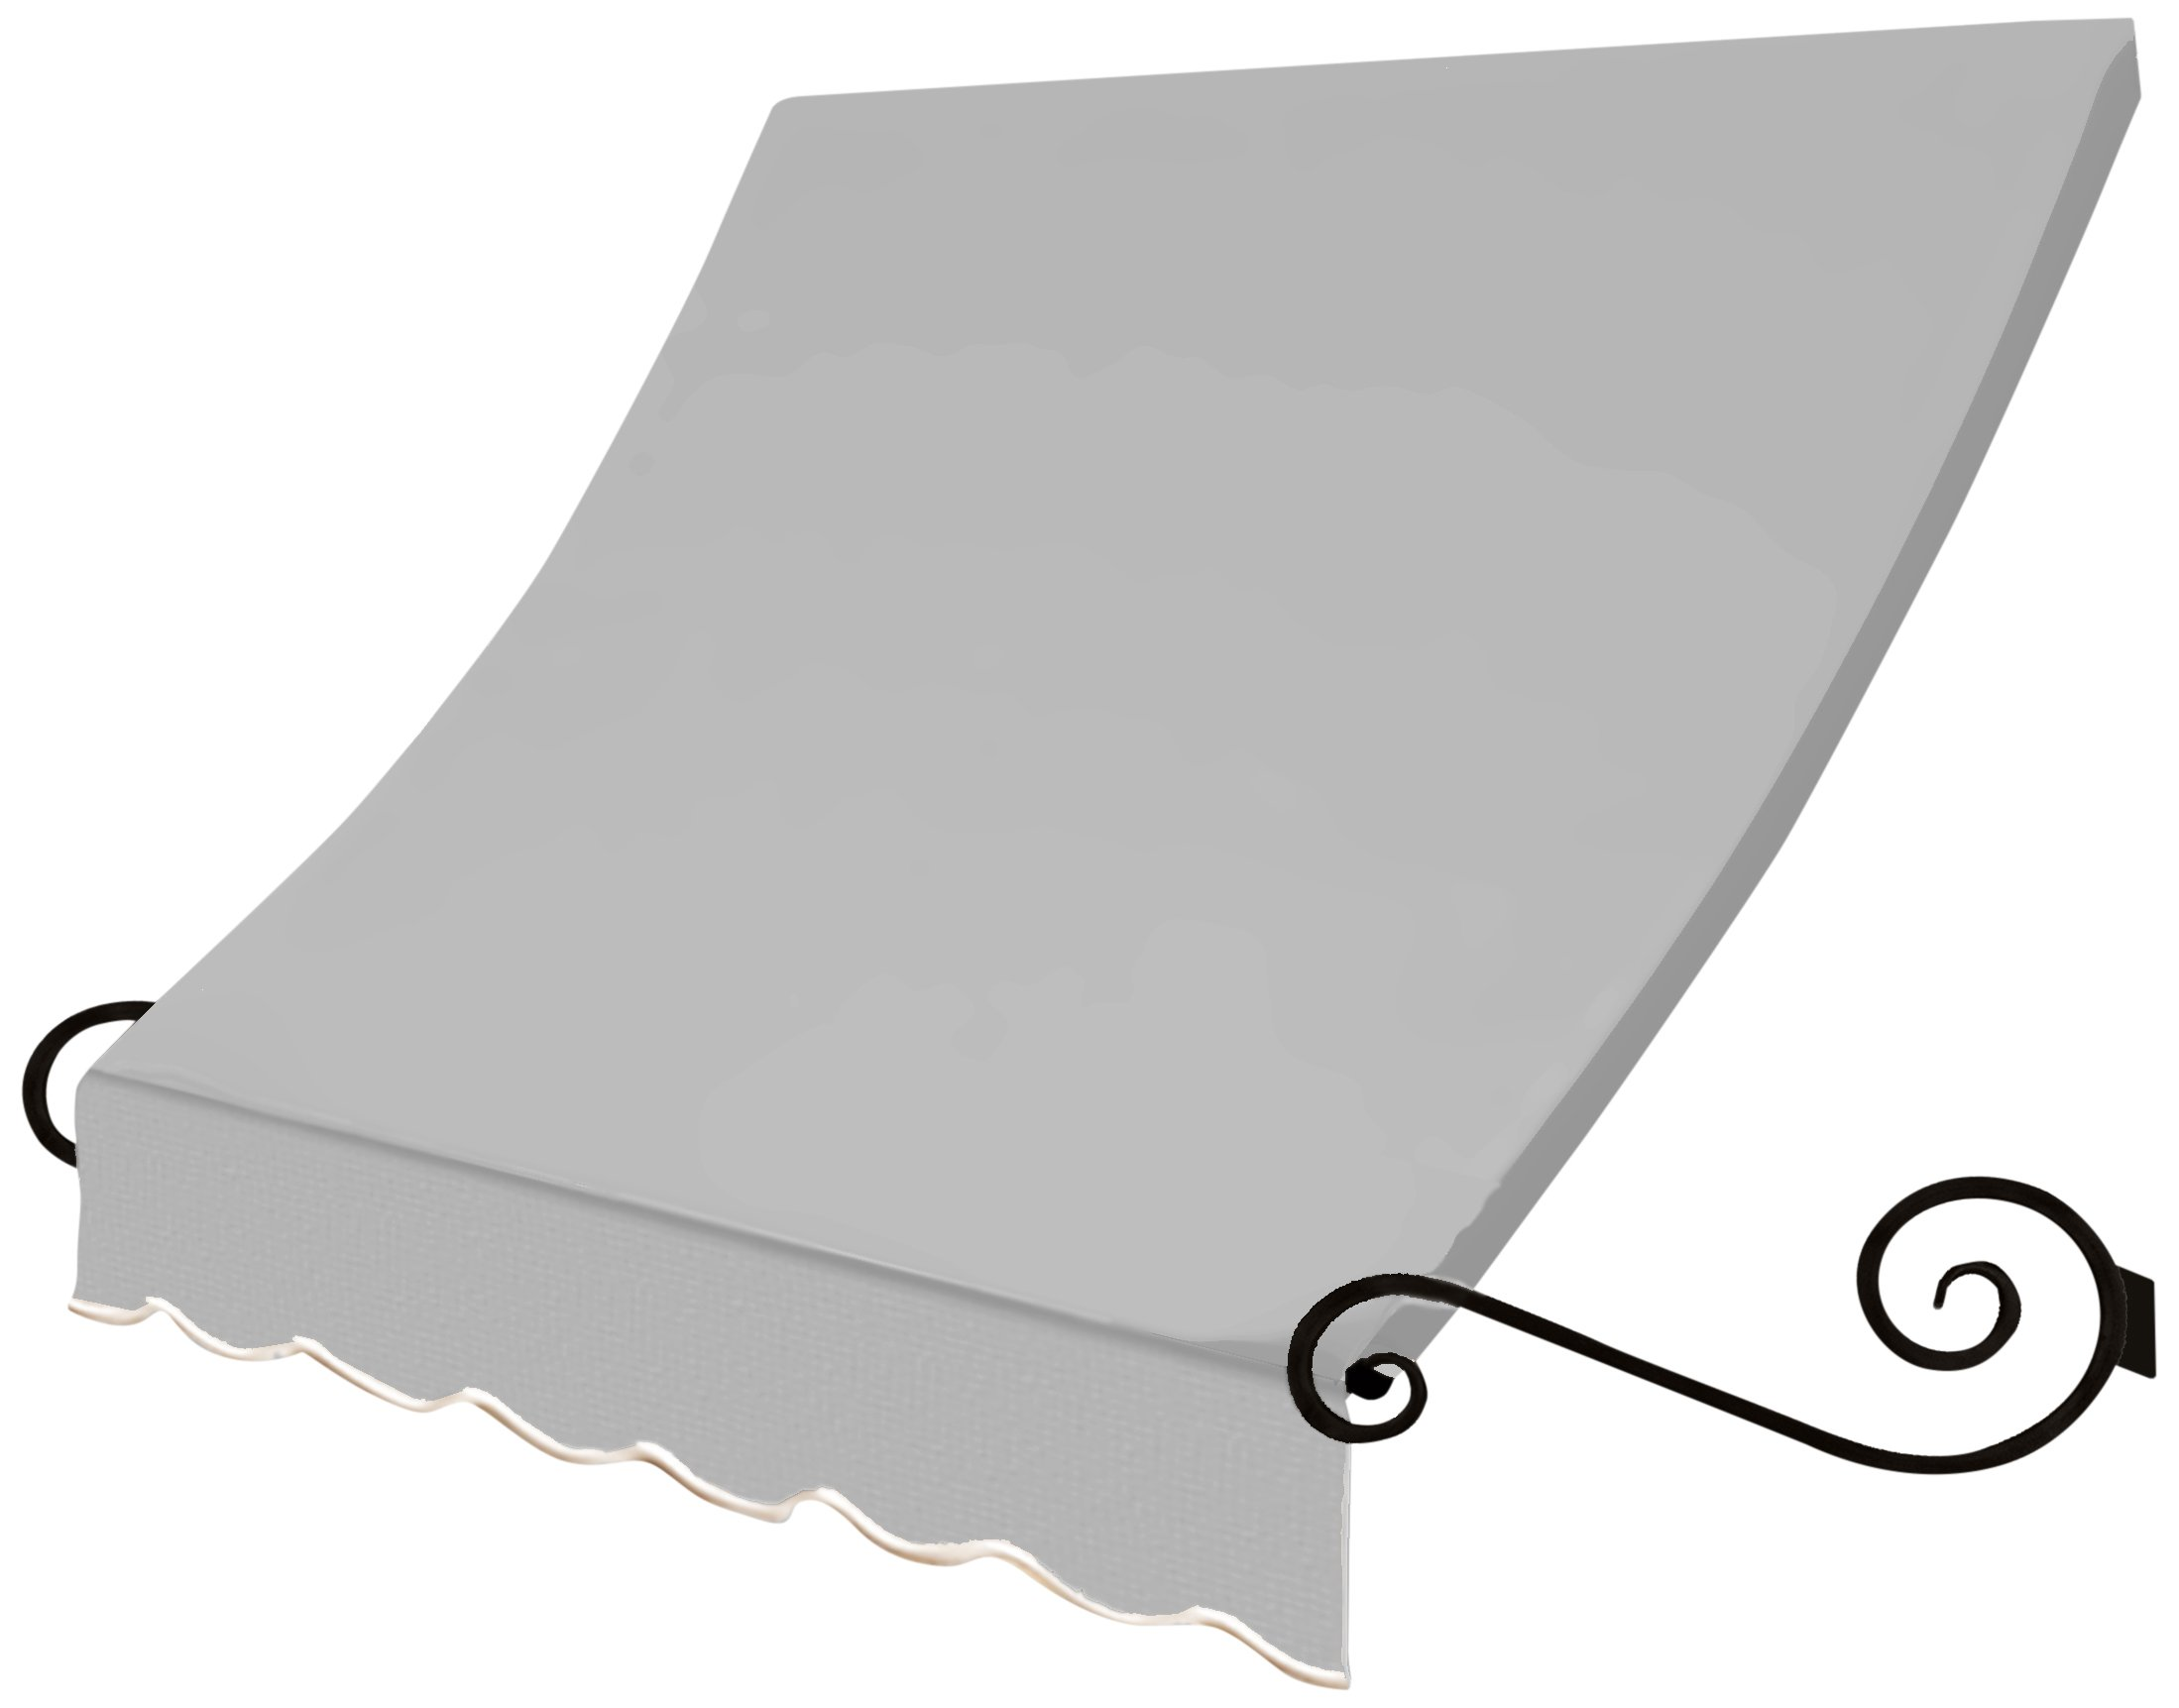 Awntech 5-Feet Charleston Window/Entry Awning, 31 by 24-Inch, Gray